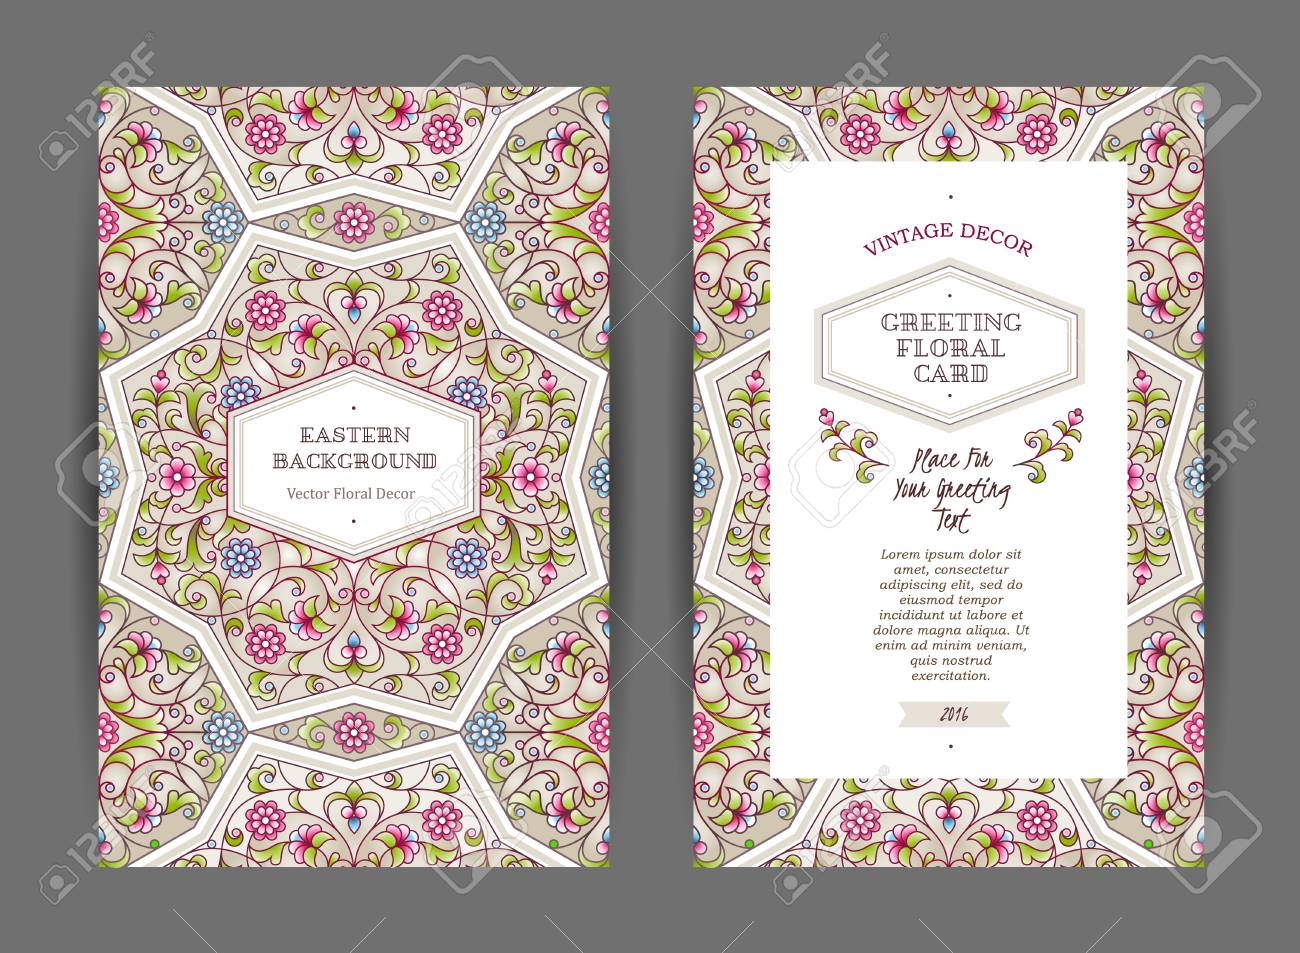 Ornate vintage cards. Bright floral decor in Eastern style. Template frame for save the date, birthday, greeting card, wedding invitation, certificate, leaflet, poster. Vector border with place for text. - 62037305